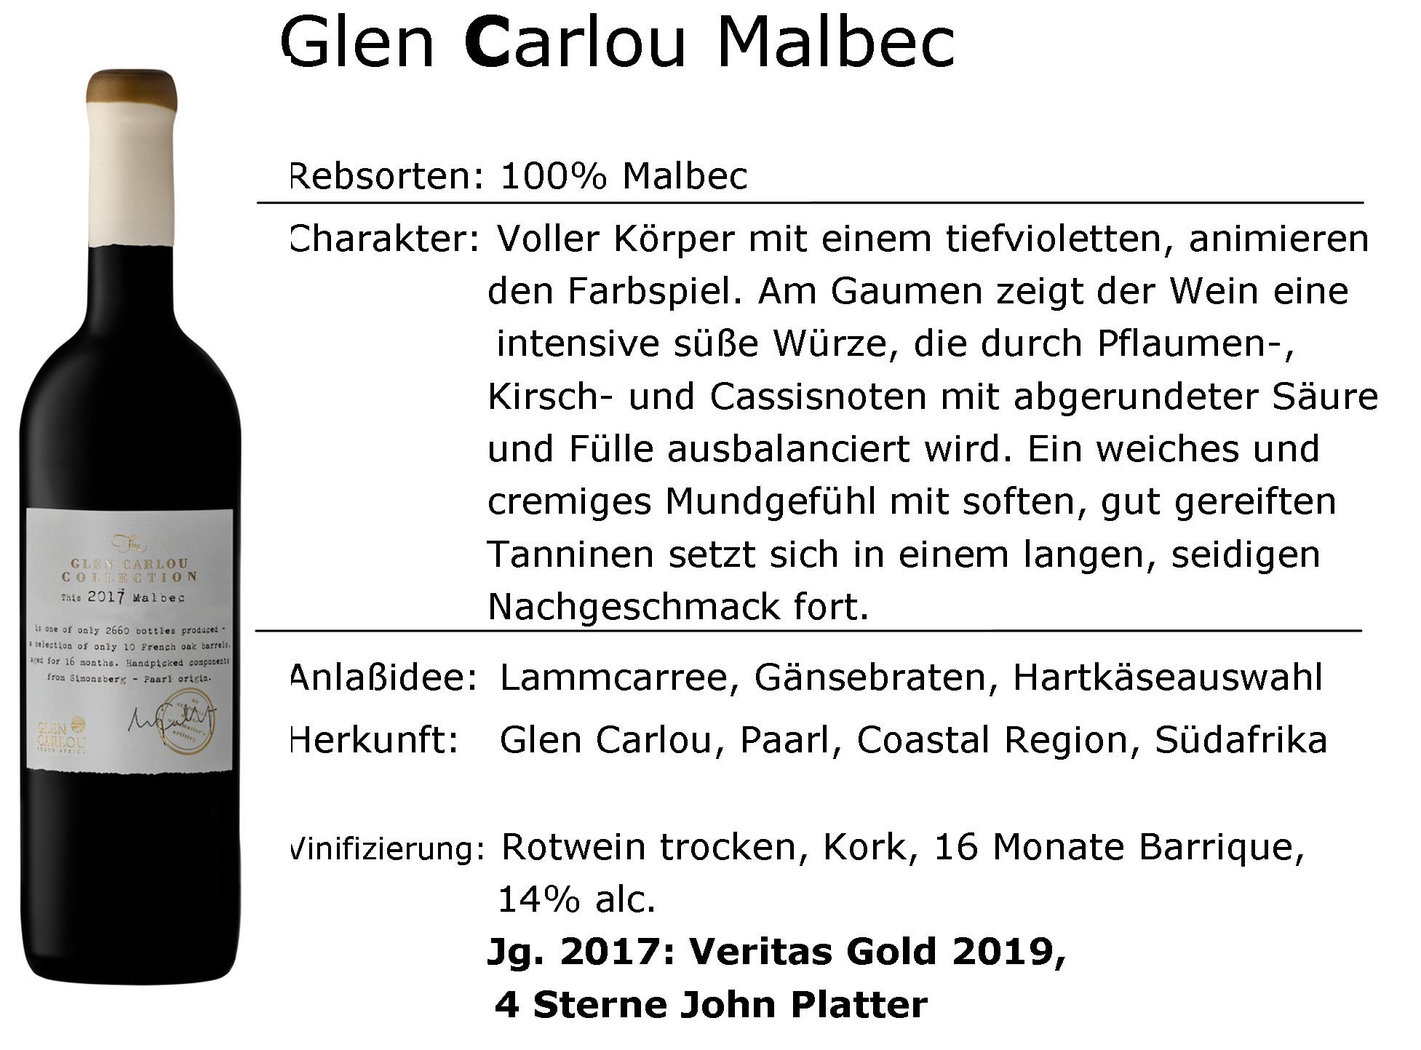 Glen Carlou Collection Malbec 2017